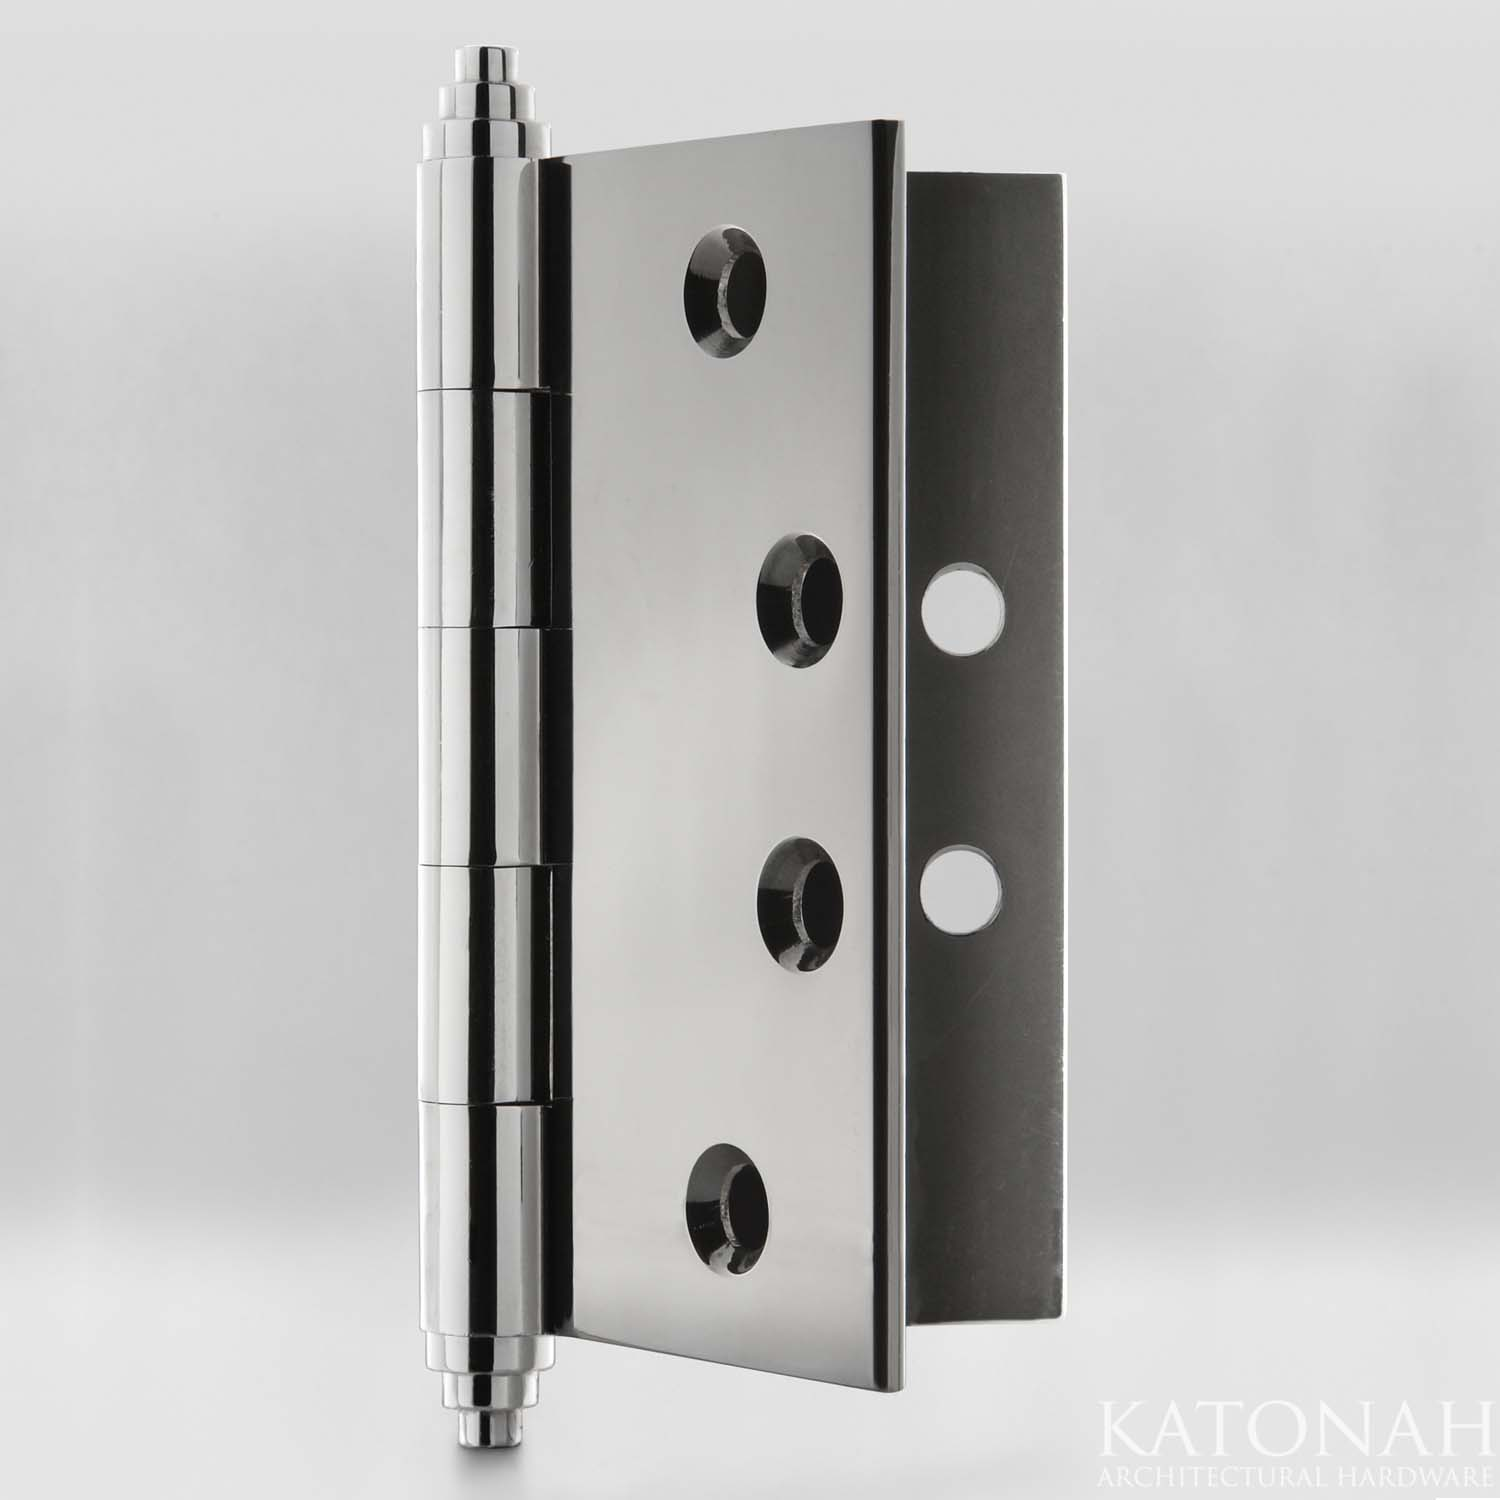 Mortise Butt Hinge With Stepped Finial